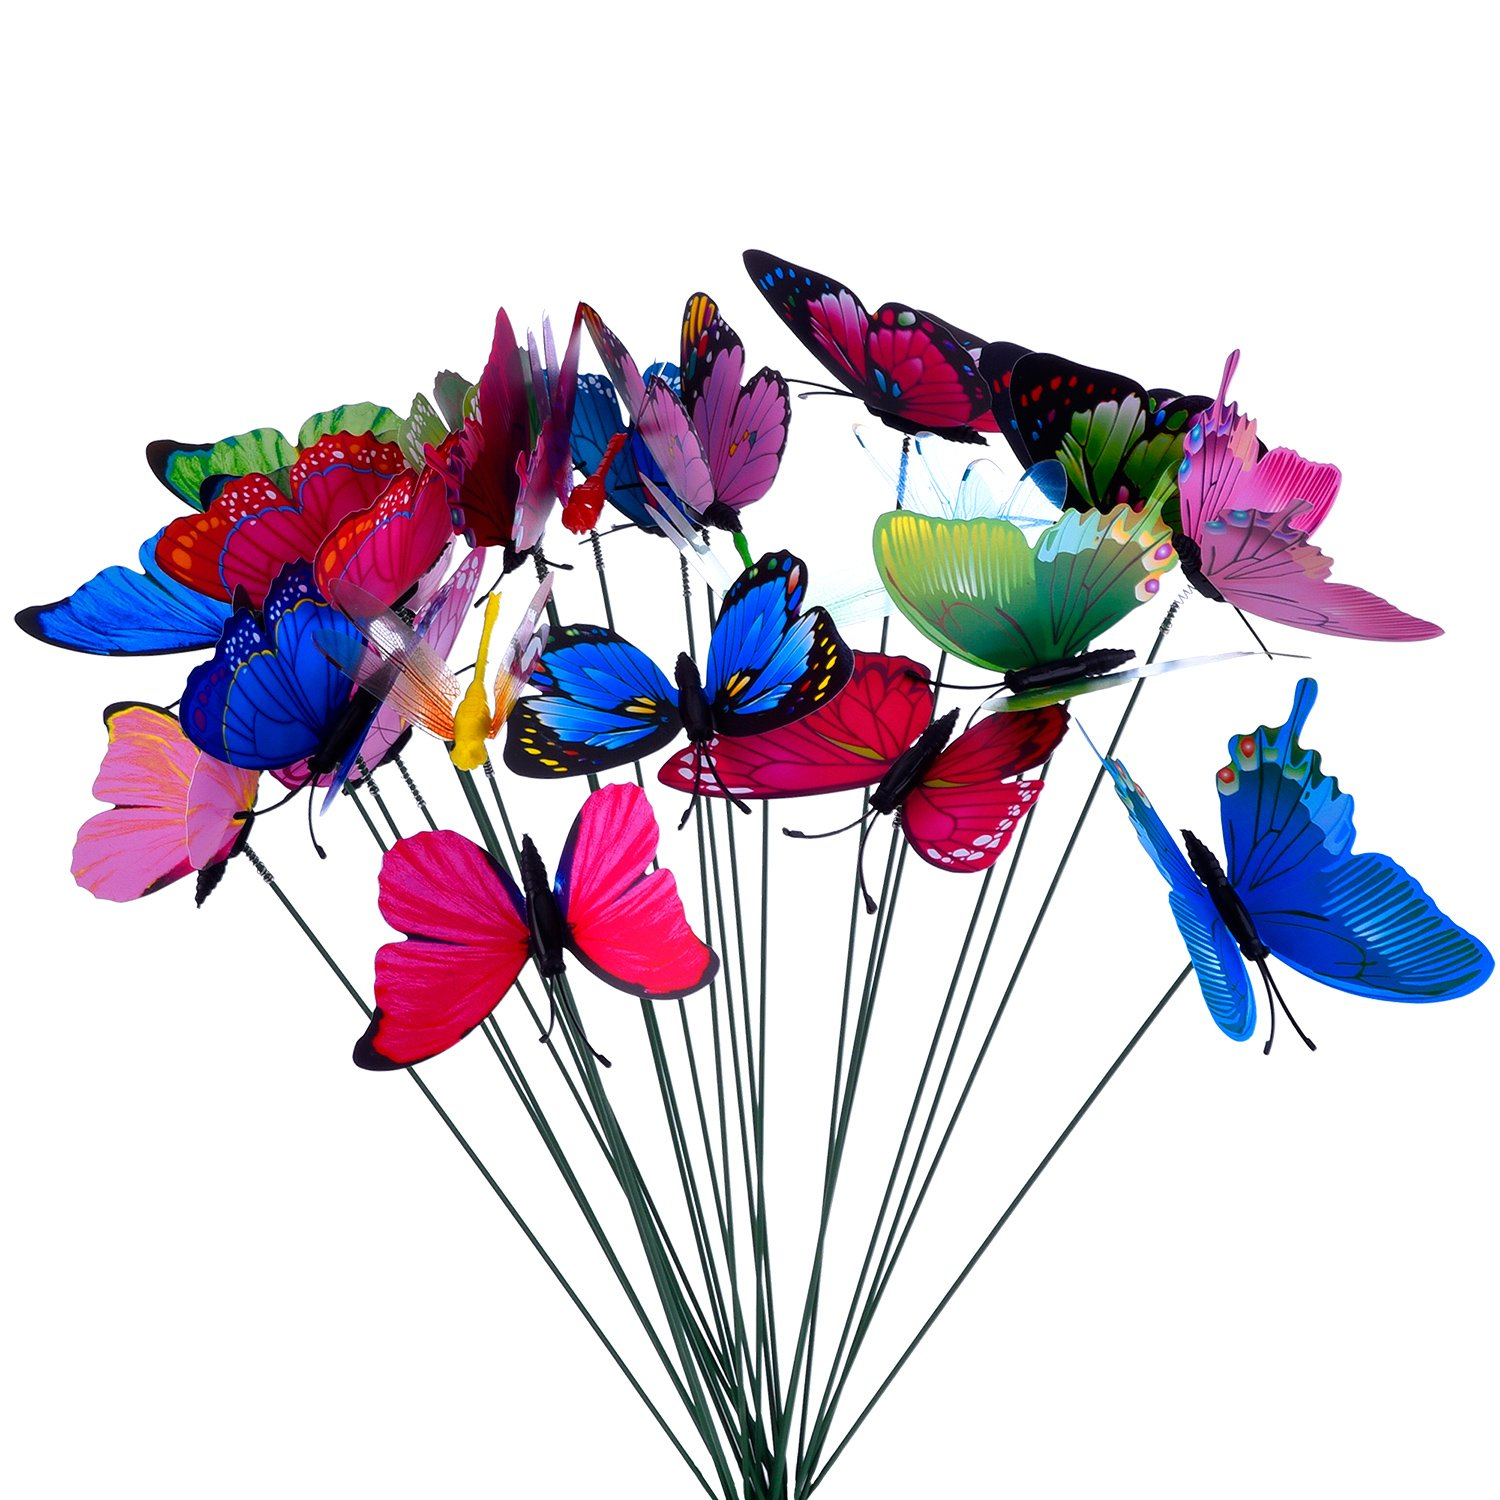 24 Pieces Colorful Garden Butterflies Dragonflies Patio Ornaments on Sticks for Plant Decoration, Outdoor Yard, Garden Decor Outus